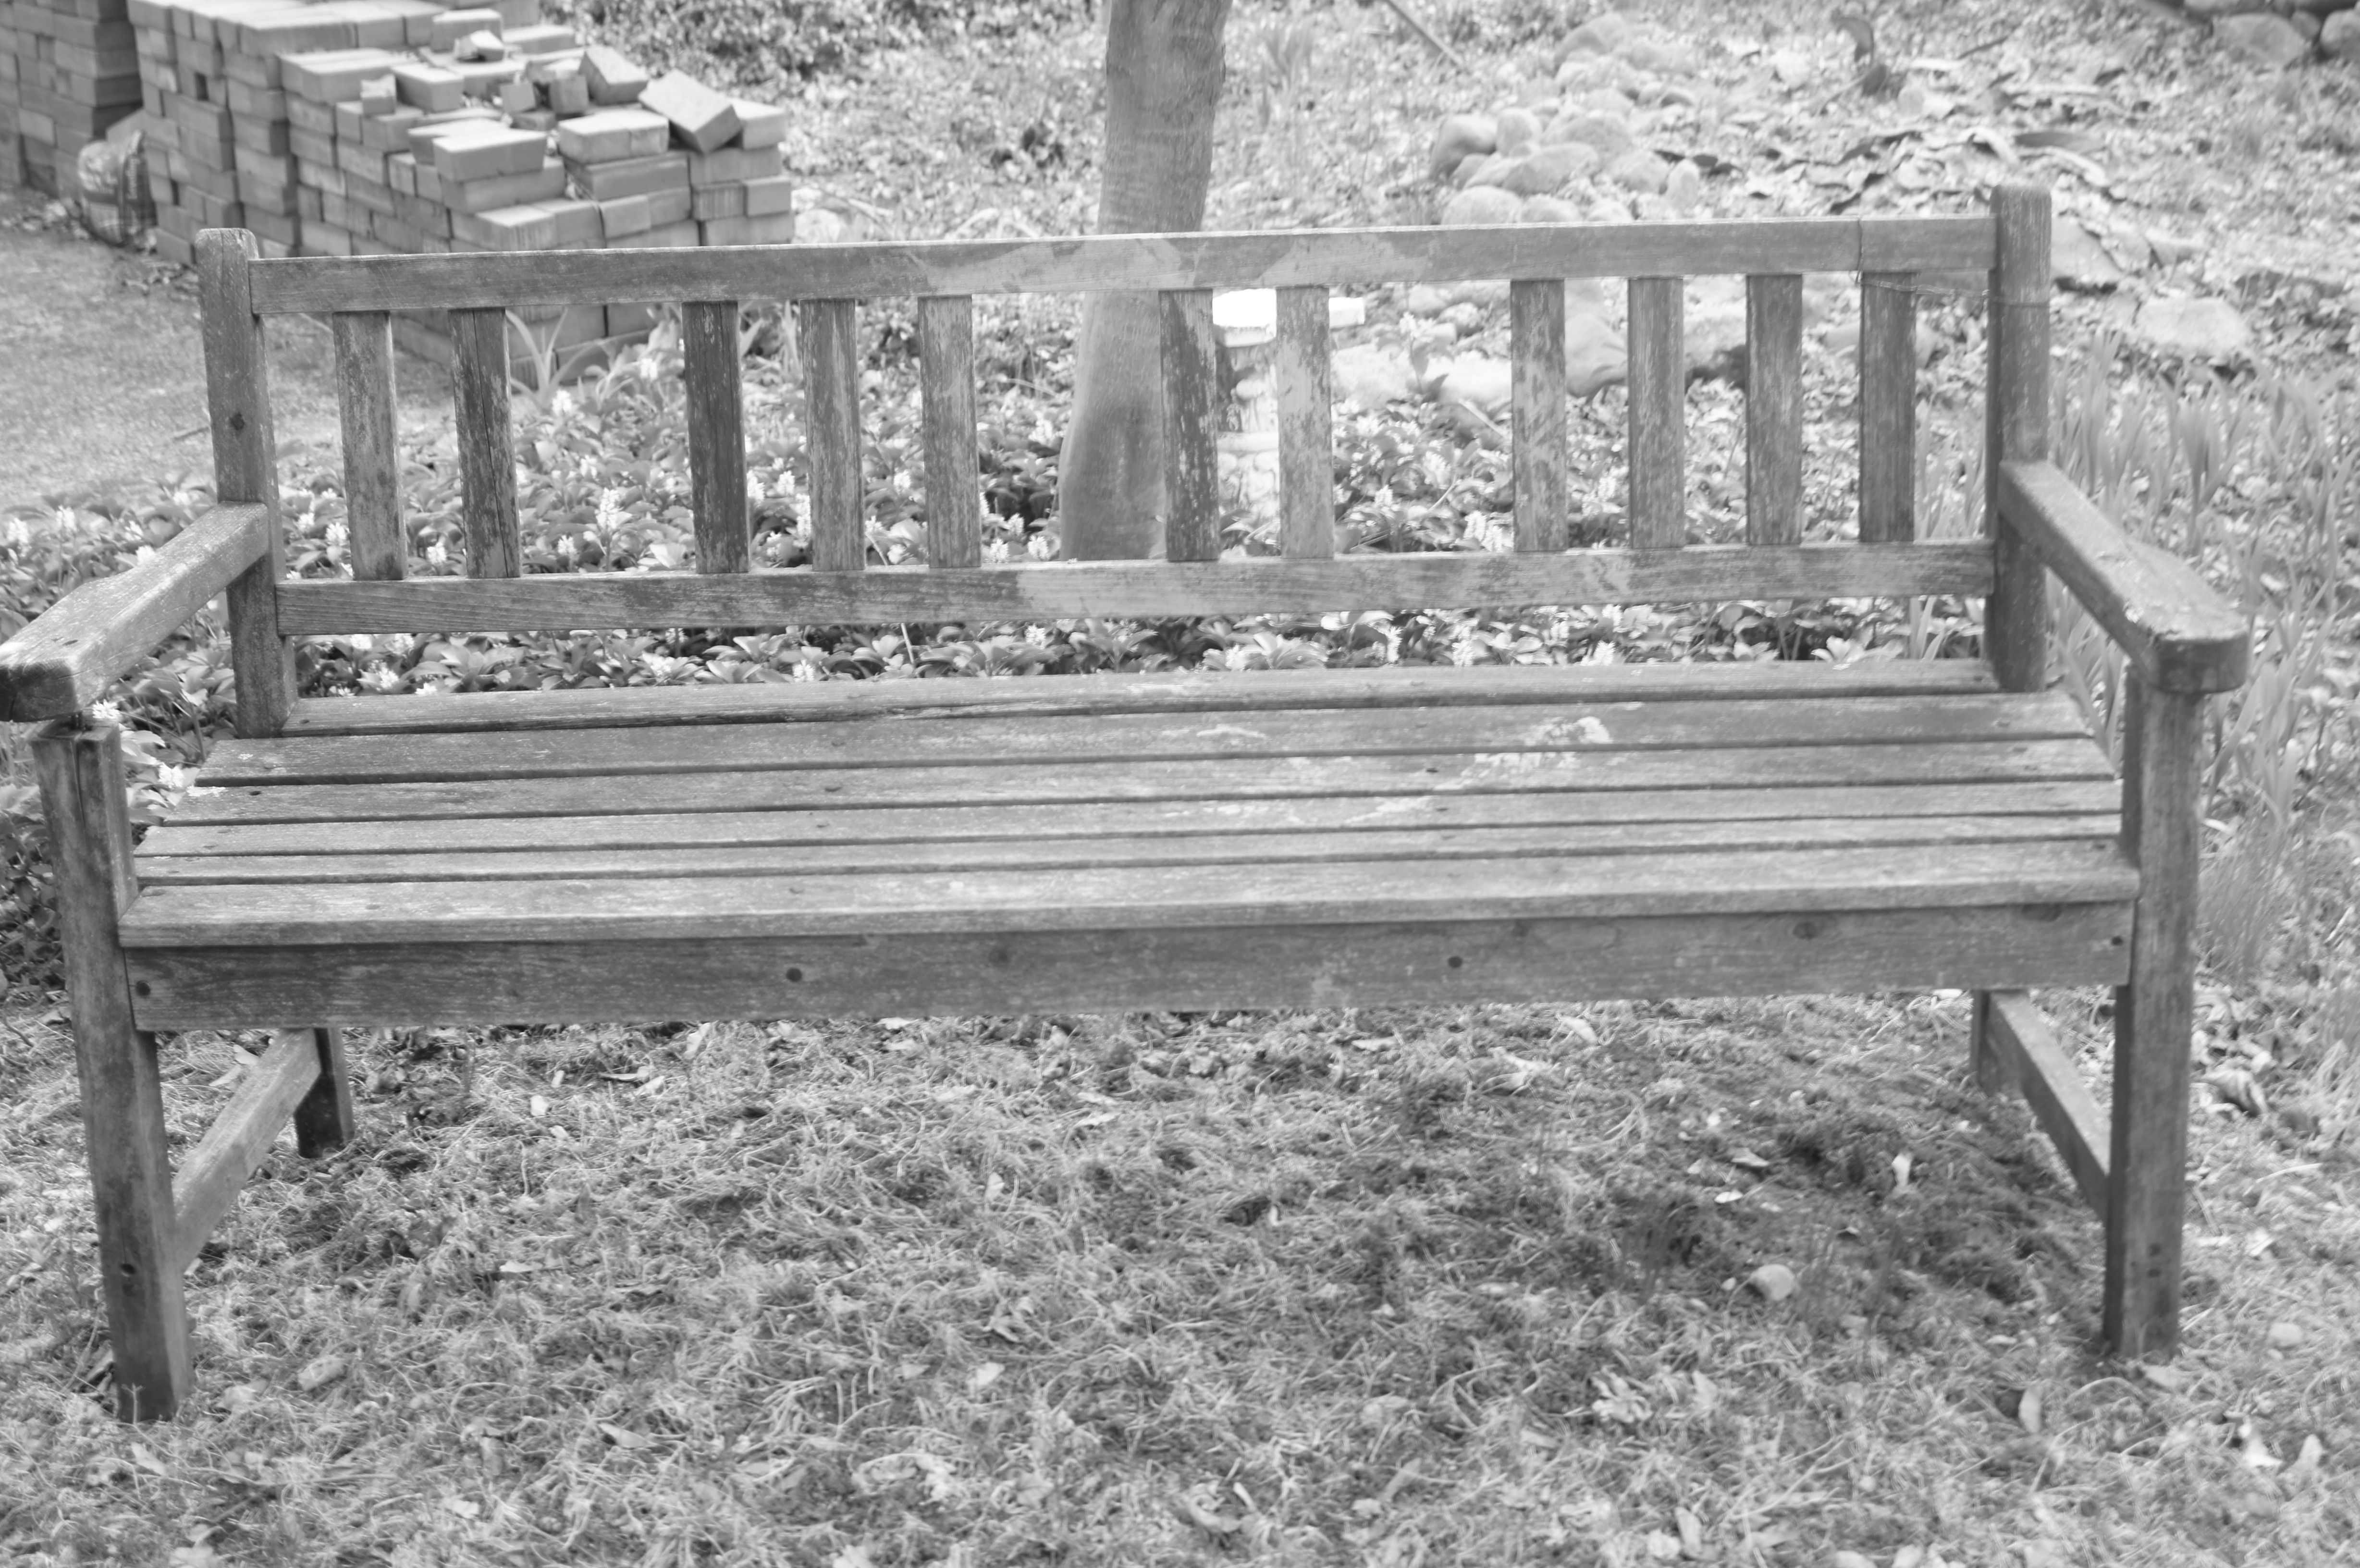 Stupendous Primitive Garden Bench My Style Garden Landscaping Gmtry Best Dining Table And Chair Ideas Images Gmtryco